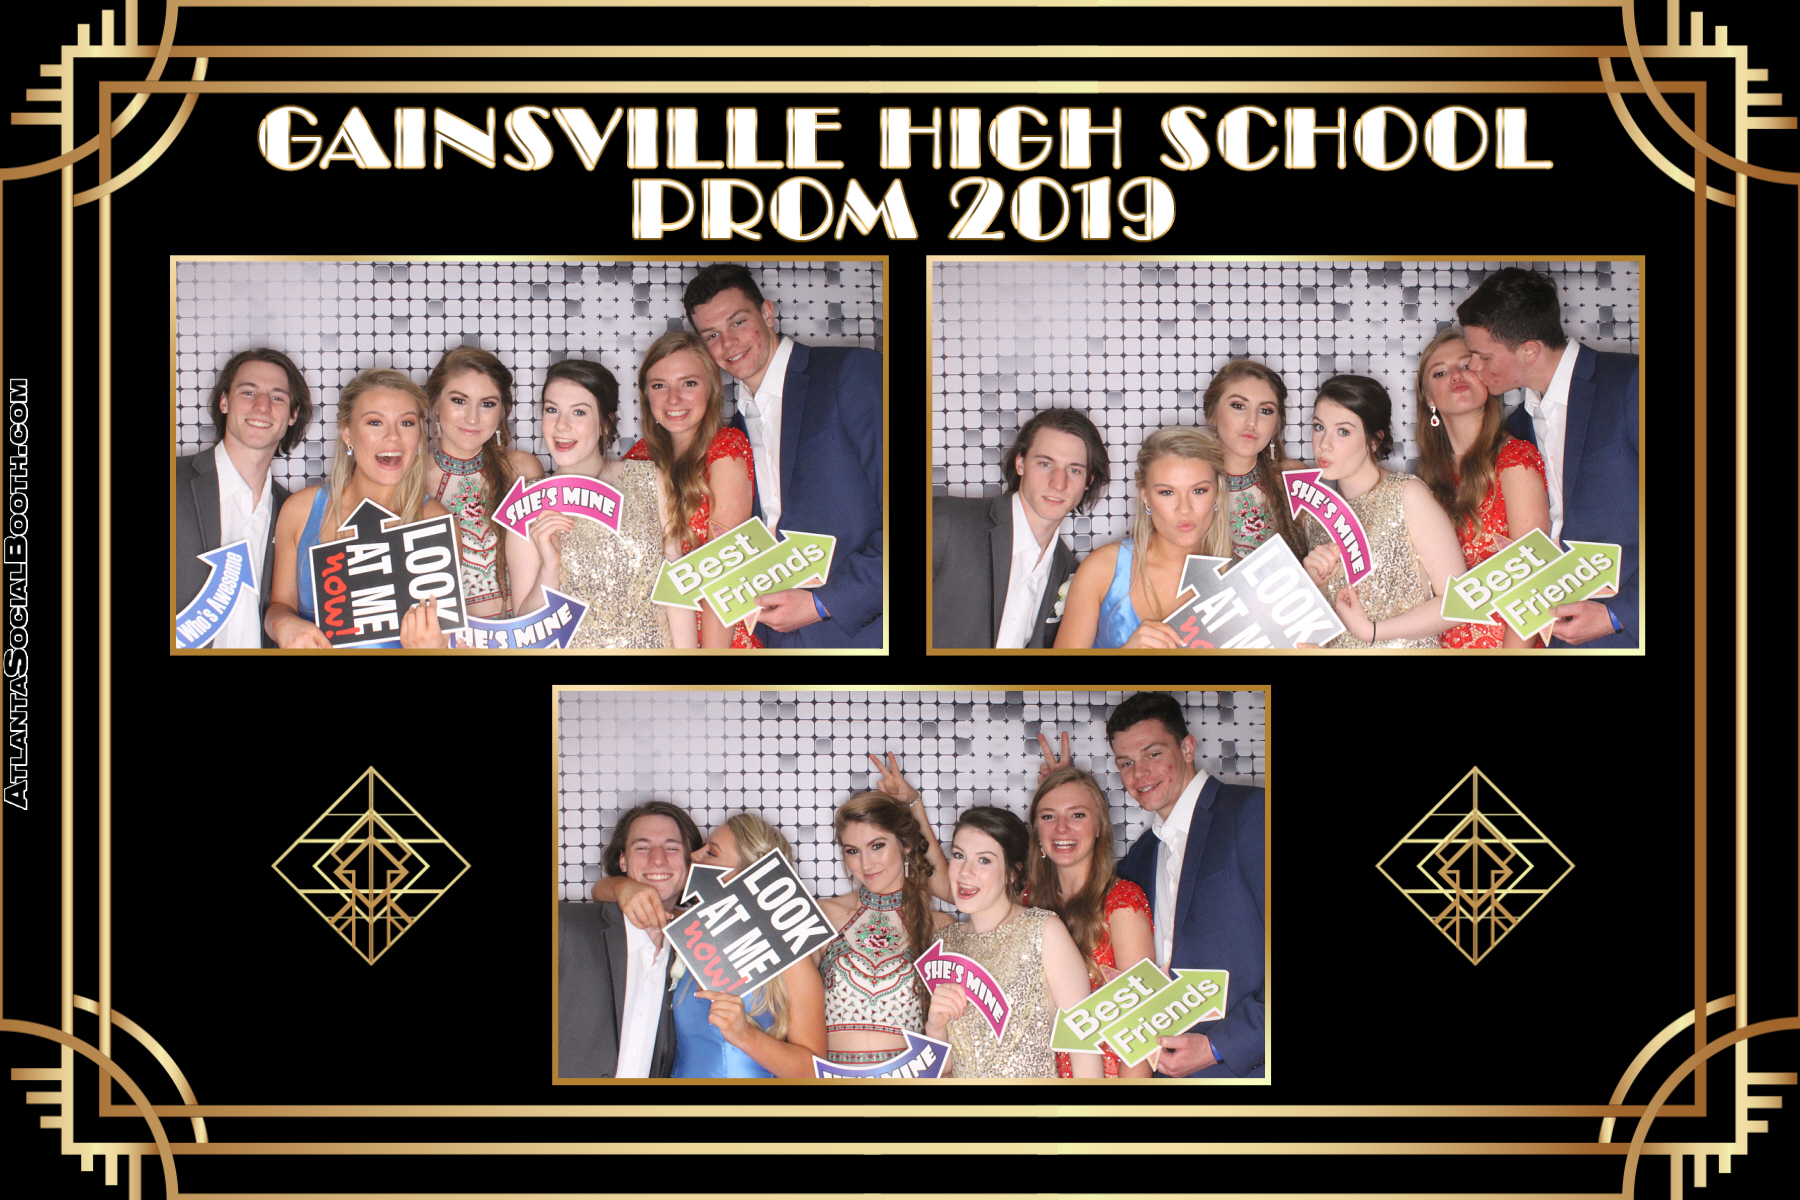 Gainsville High School Prom